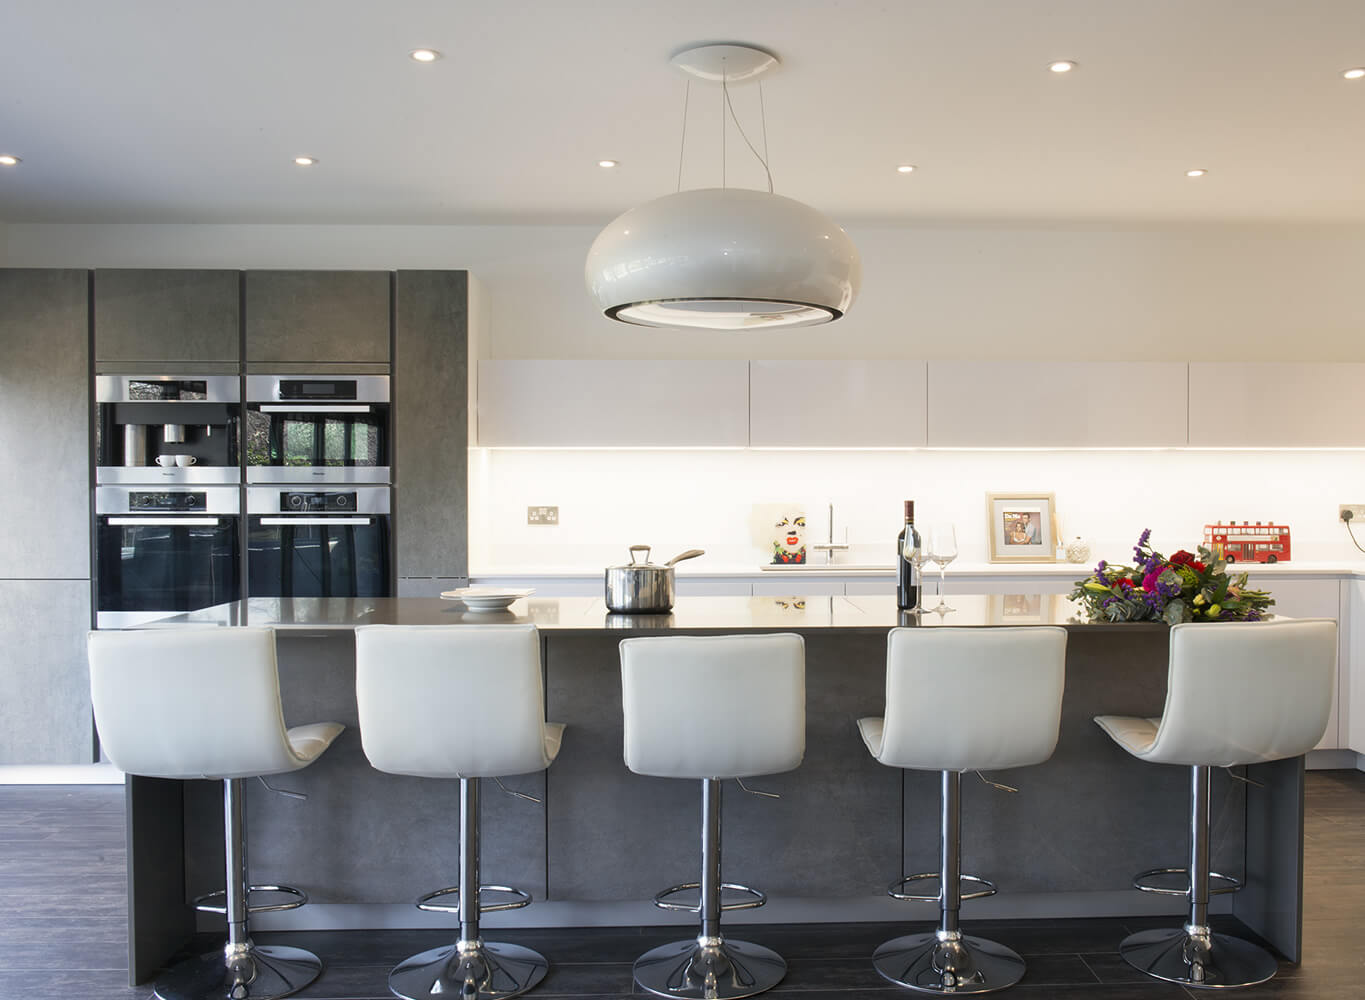 Dark kitchen with white bar chairs